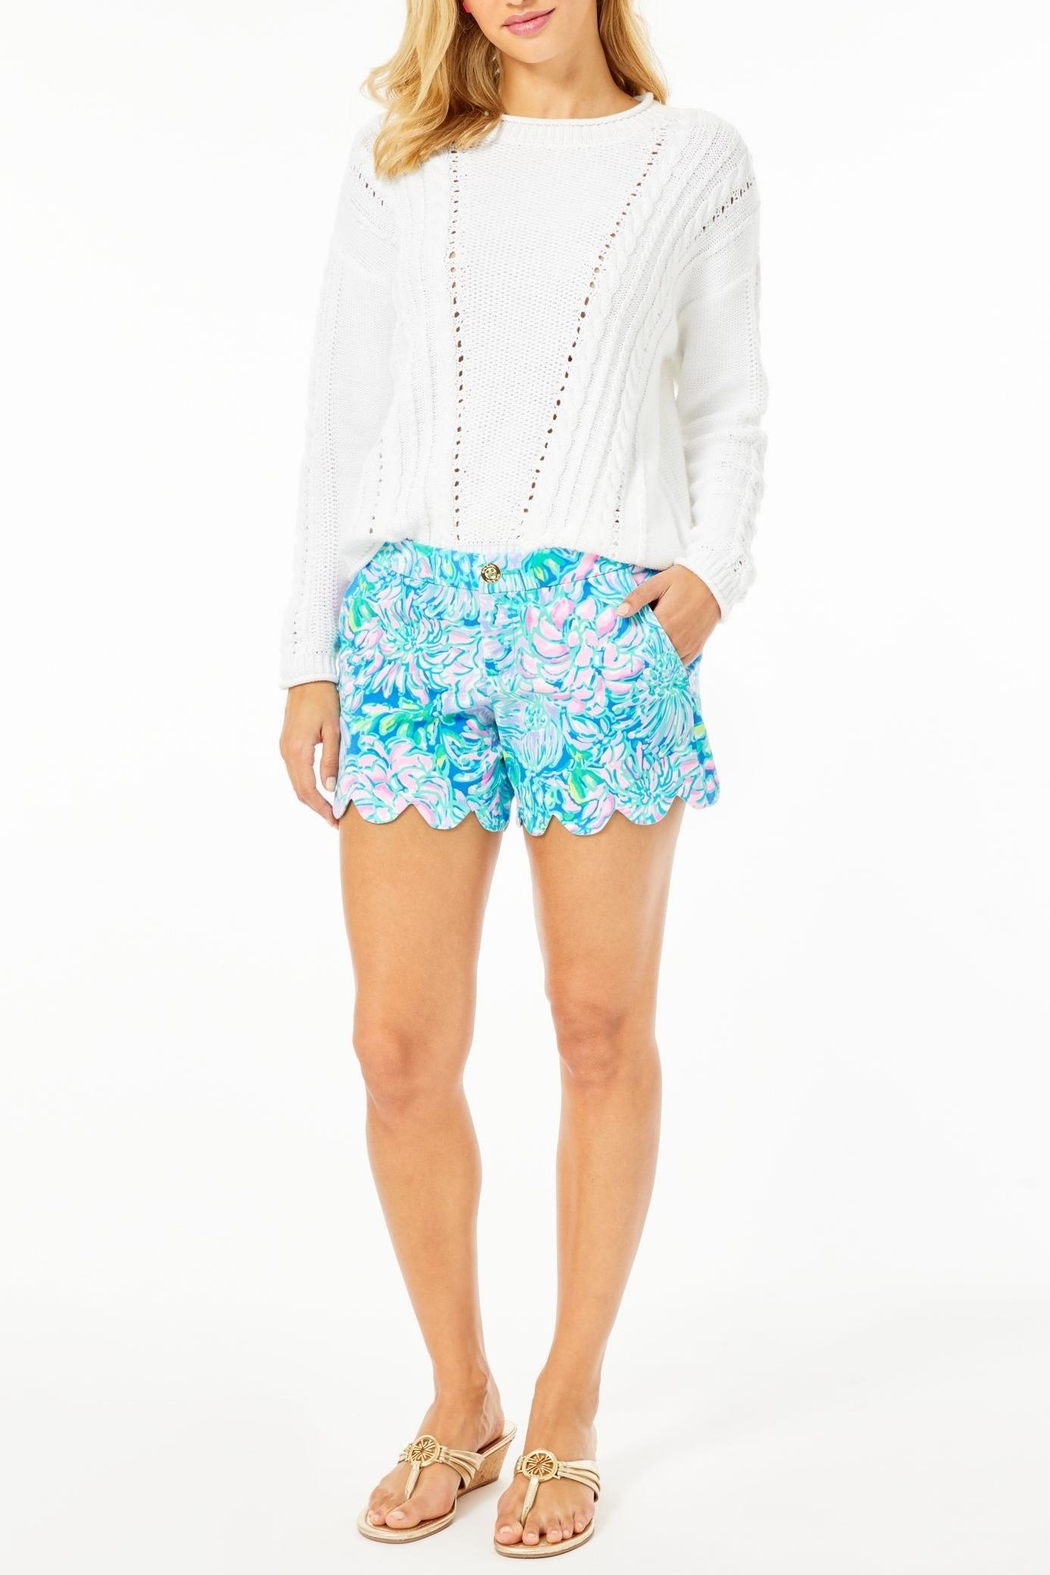 Lilly Pulitzer Buttercup Stretch Short - Back Cropped Image